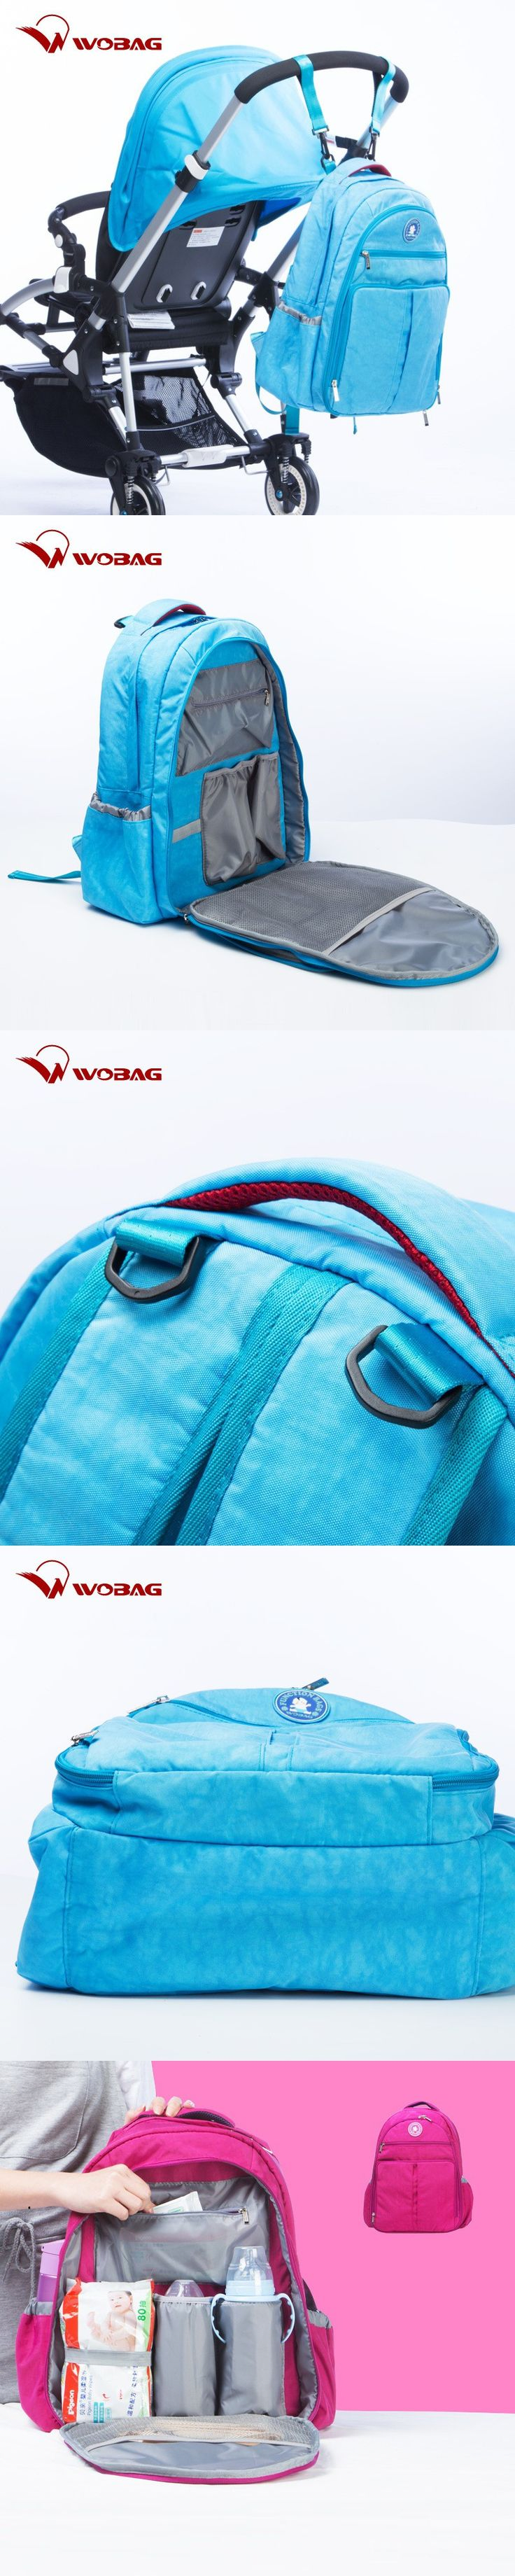 2017 New Large capacity multifunctional mummy backpack nappy bag baby diaper bags mommy maternity bag babies care product $34.89